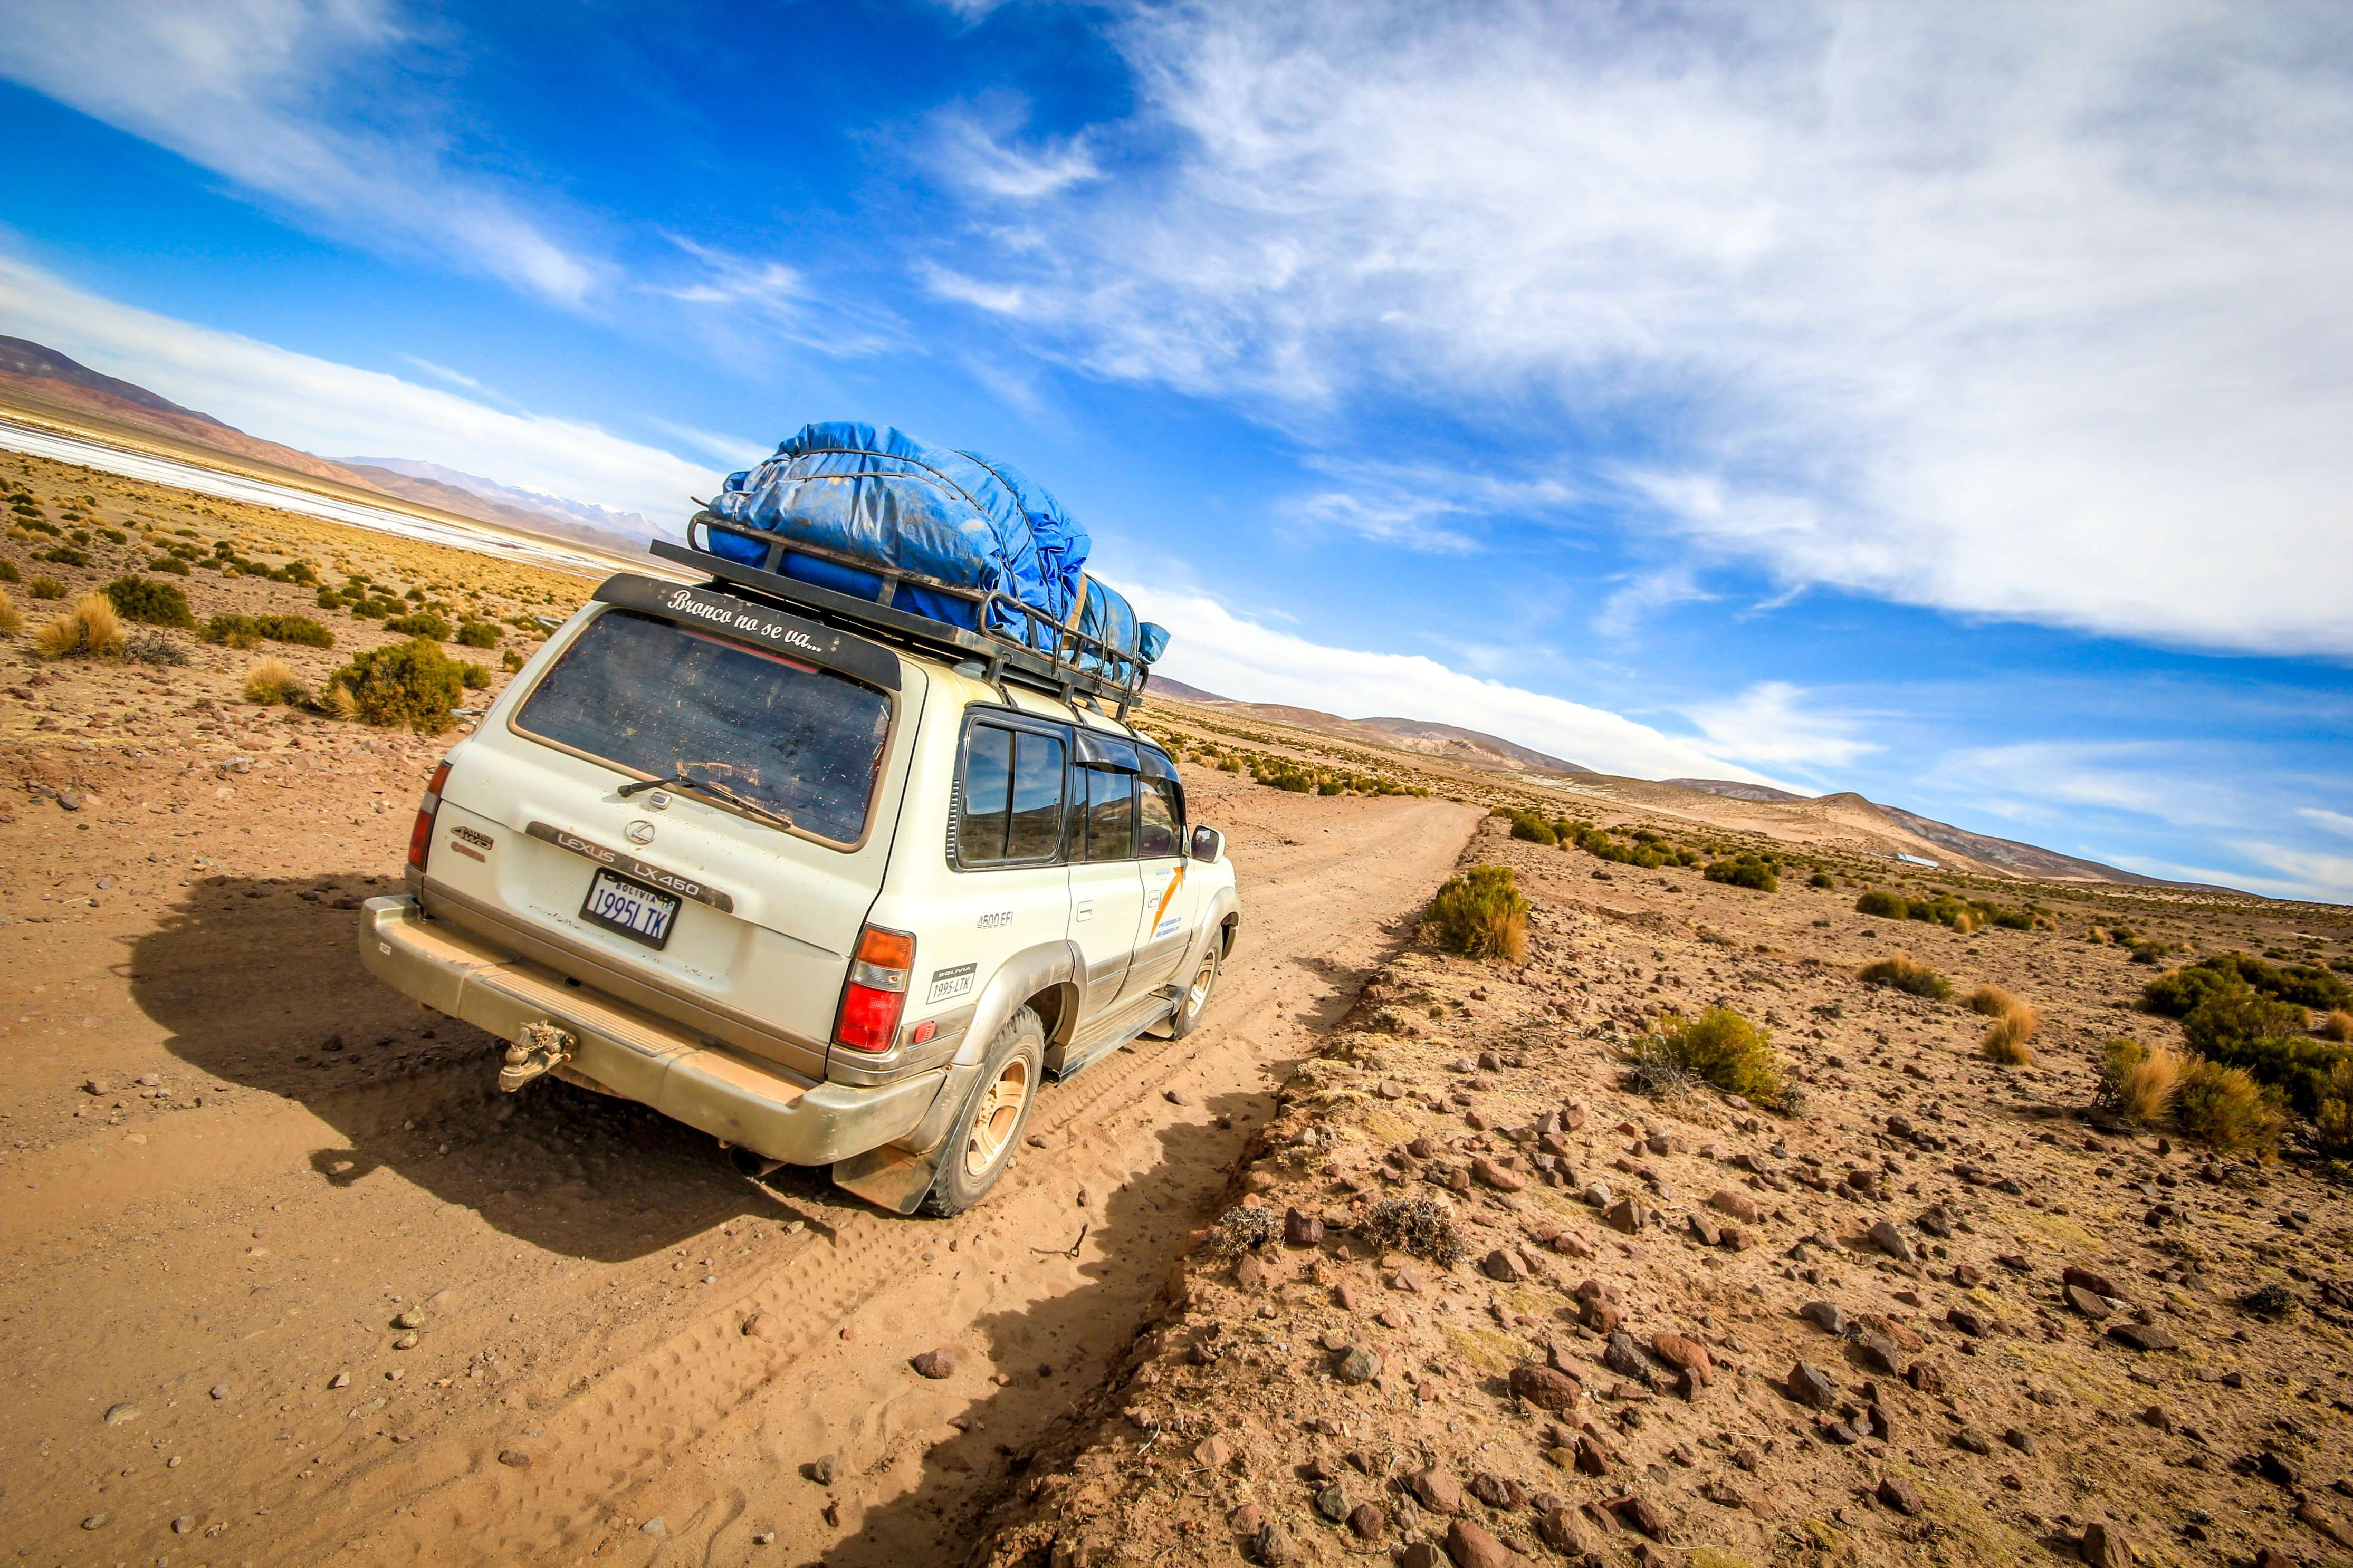 Summer Travel Tips for Your Upcoming Road Trip